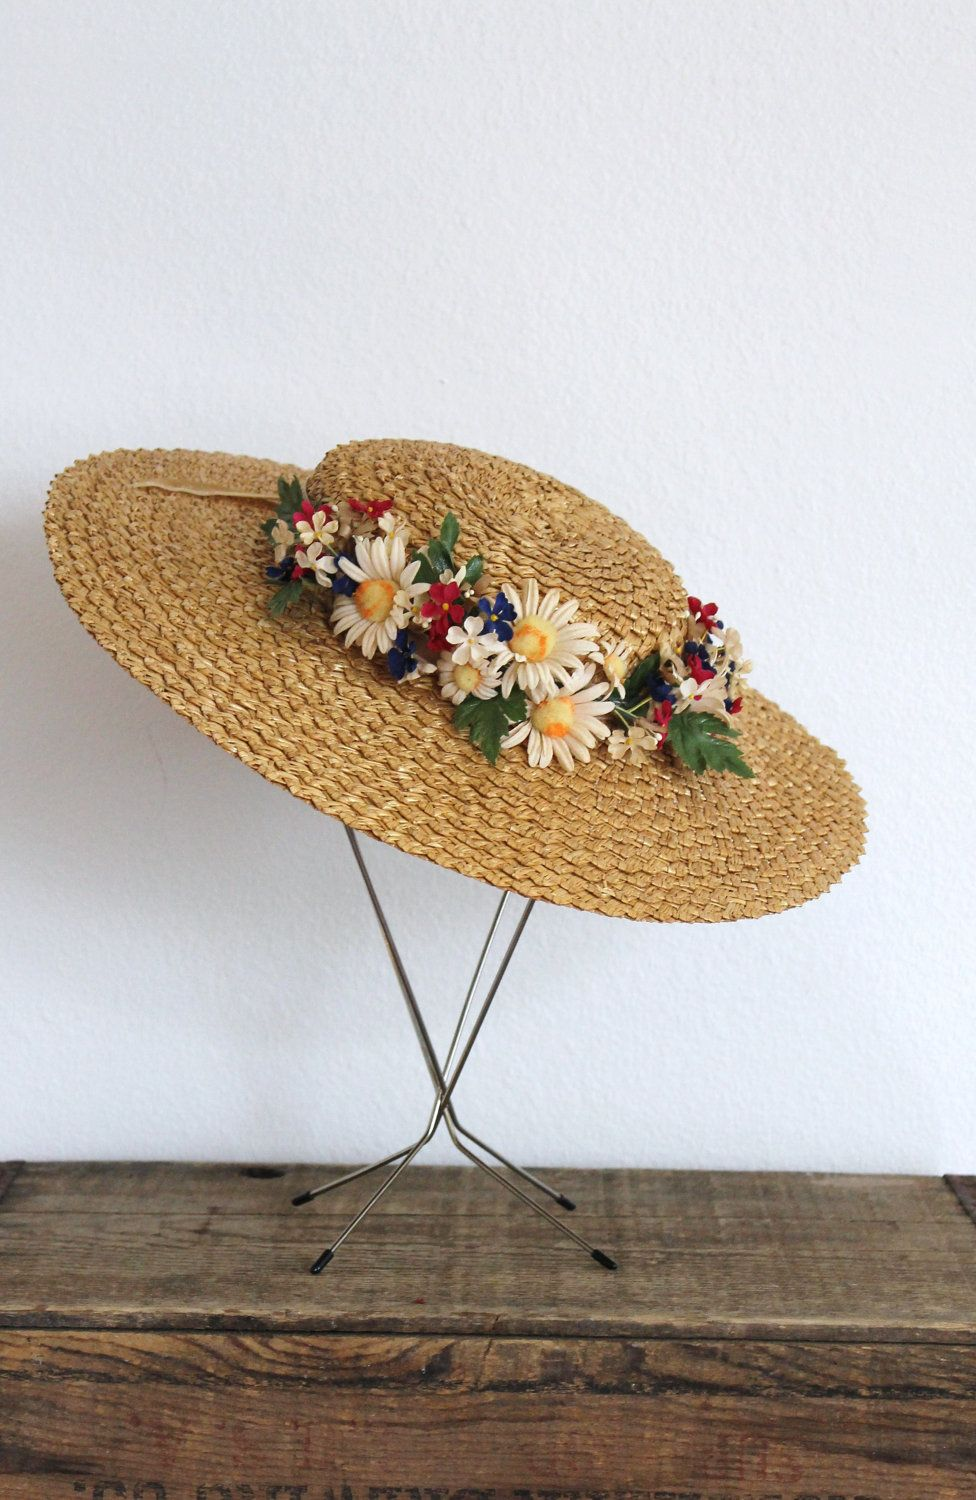 30 Off All Items Vintage 1930s Straw Hat 30s Wide Brim Straw Floral Boater Hat With Millinery Flowers And Taup Vintage Picnic Vintage Style Hat Hats Vintage